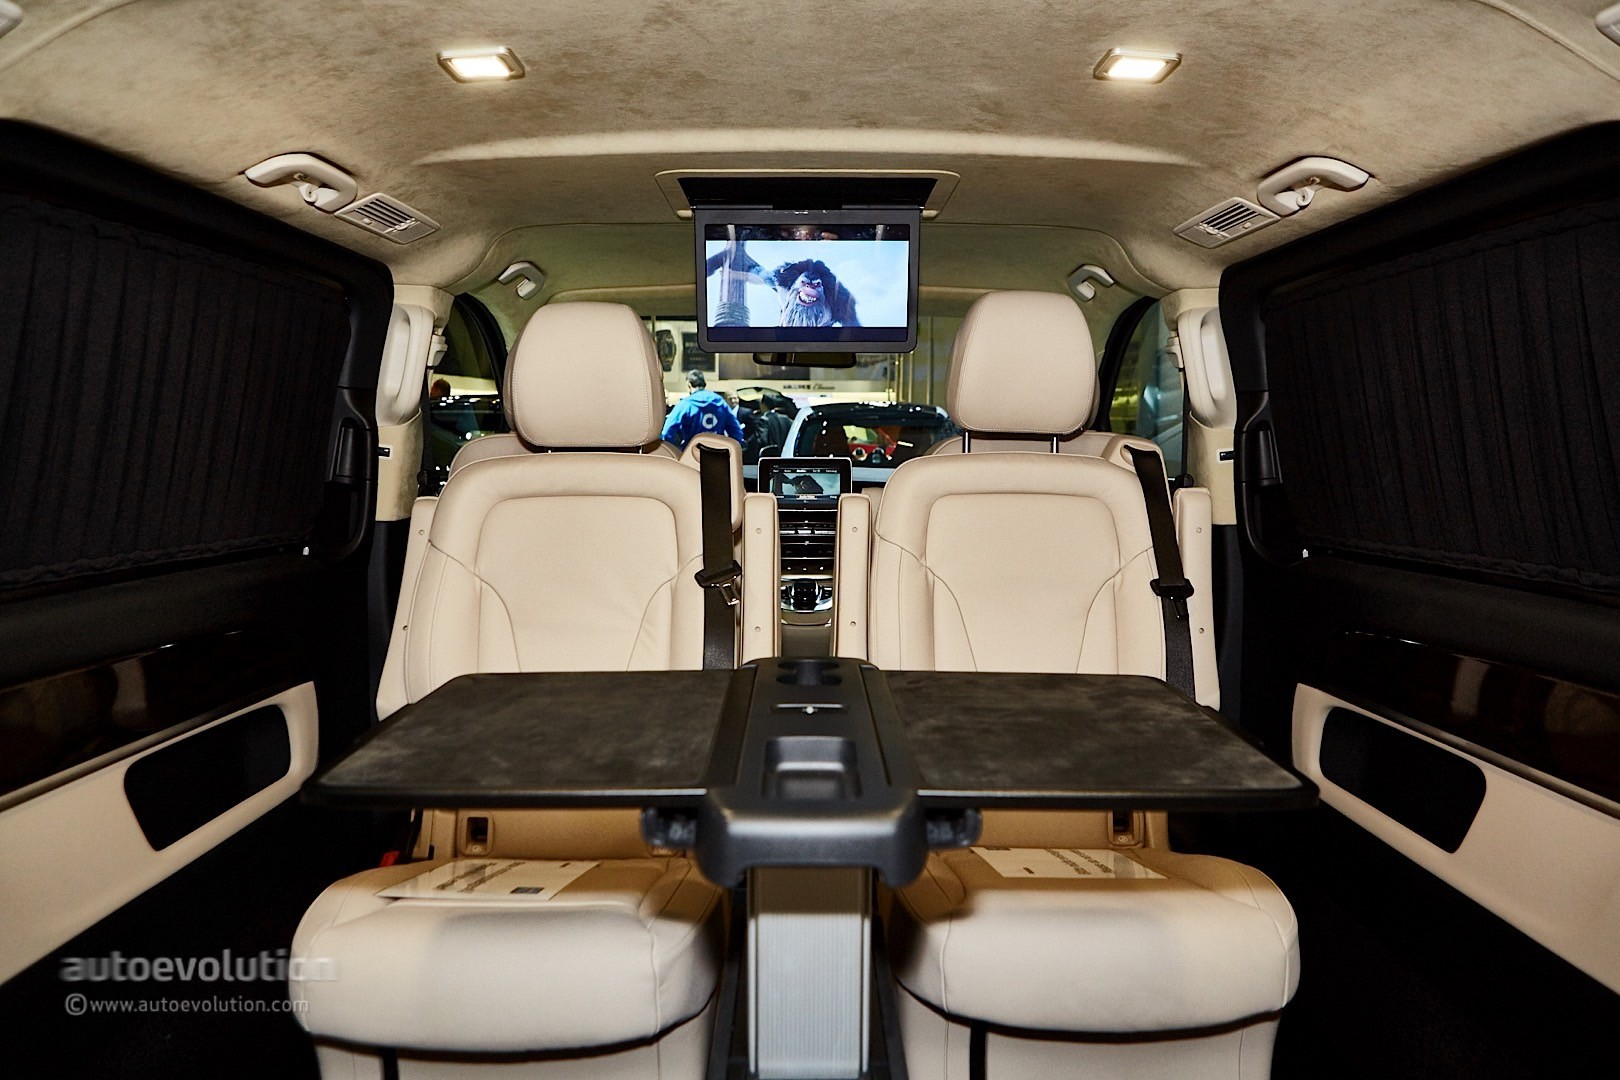 ' ' from the web at 'http://s1.cdn.autoevolution.com/images/news/gallery/brabus-sprinter-and-v-class-fill-the-luxury-van-gap-in-frankfurt-live-photos_27.jpg'